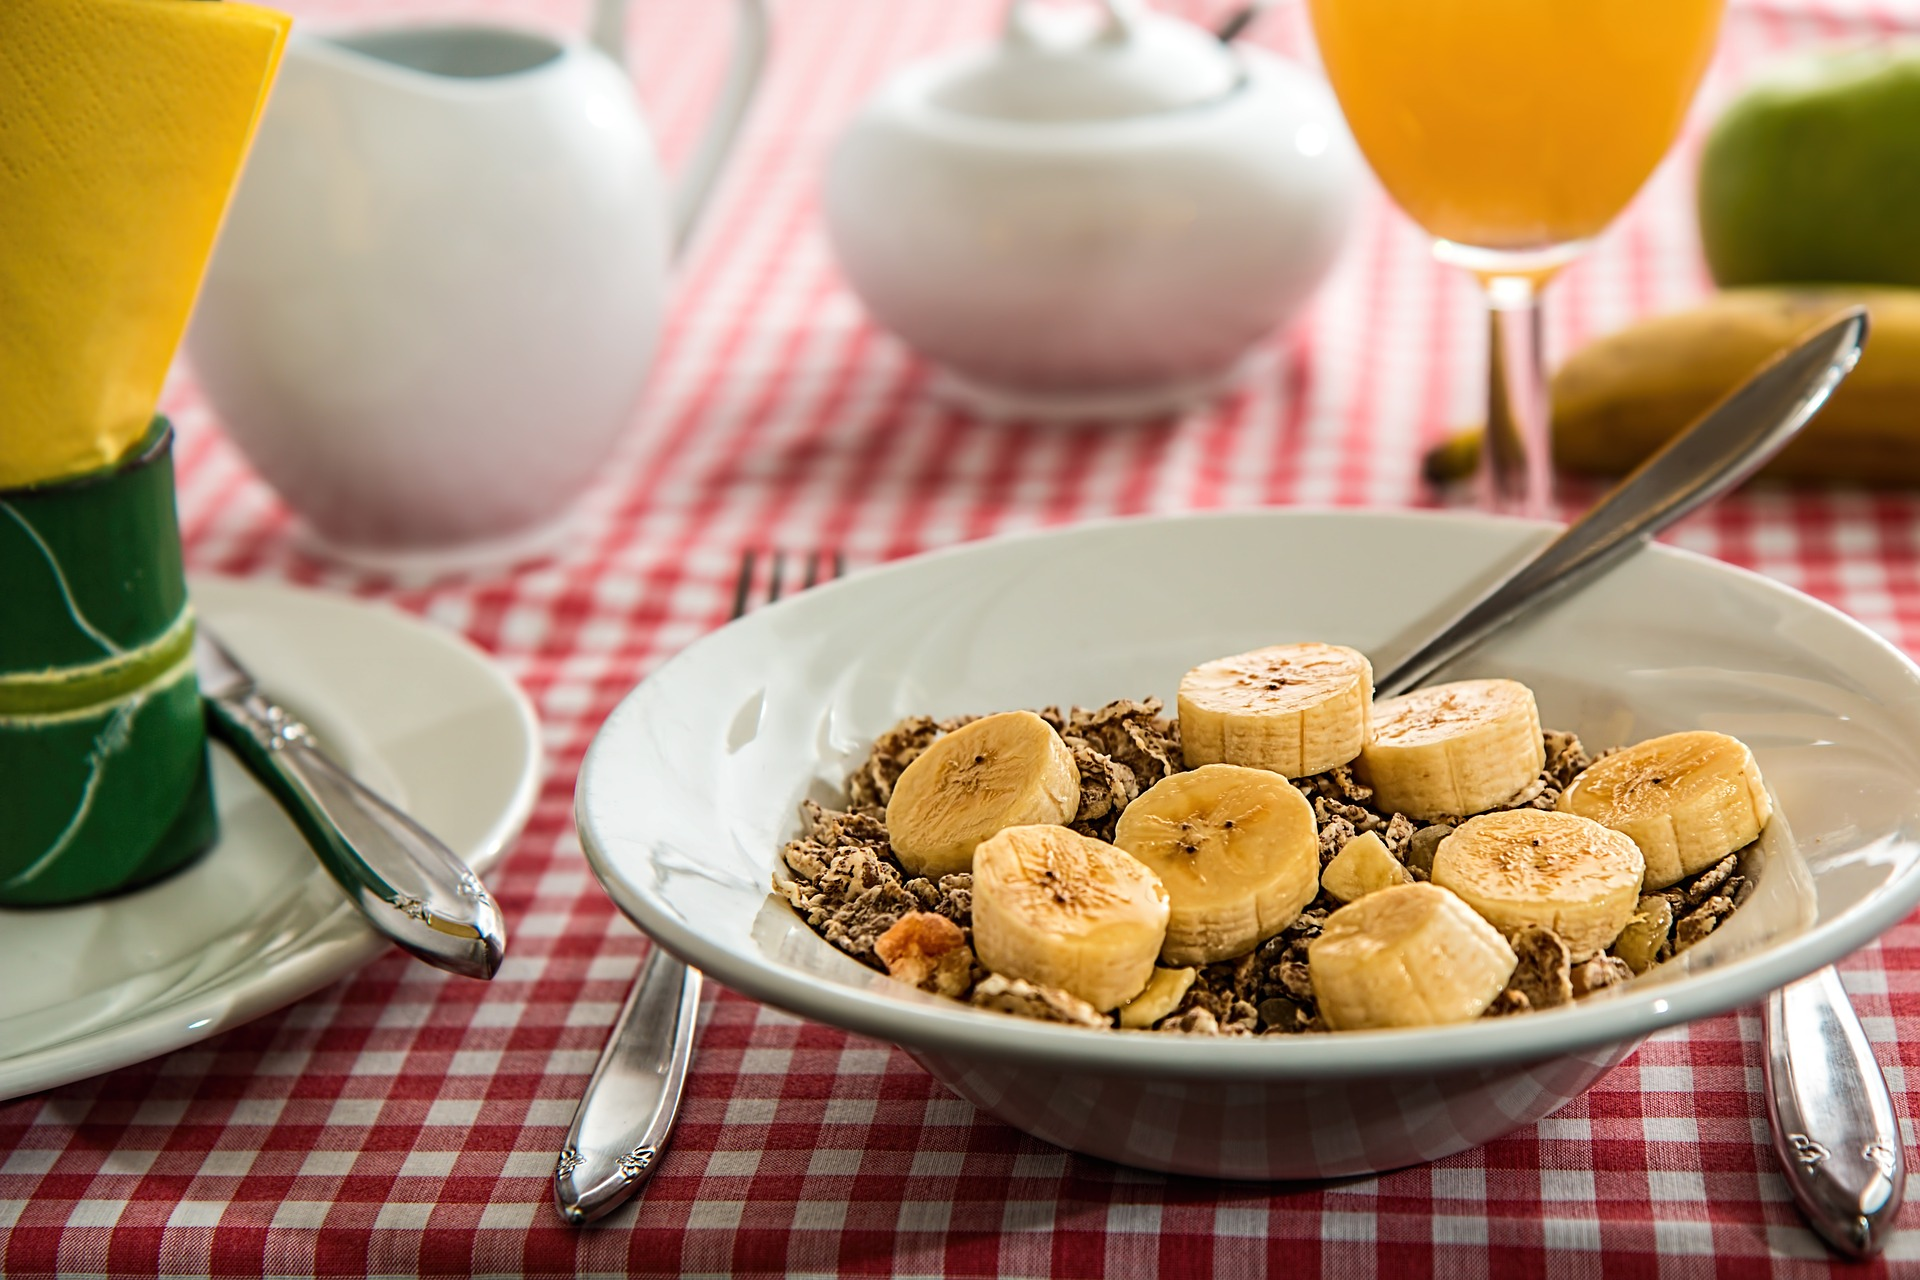 Our writer explains why she doesn't eat breakfast.